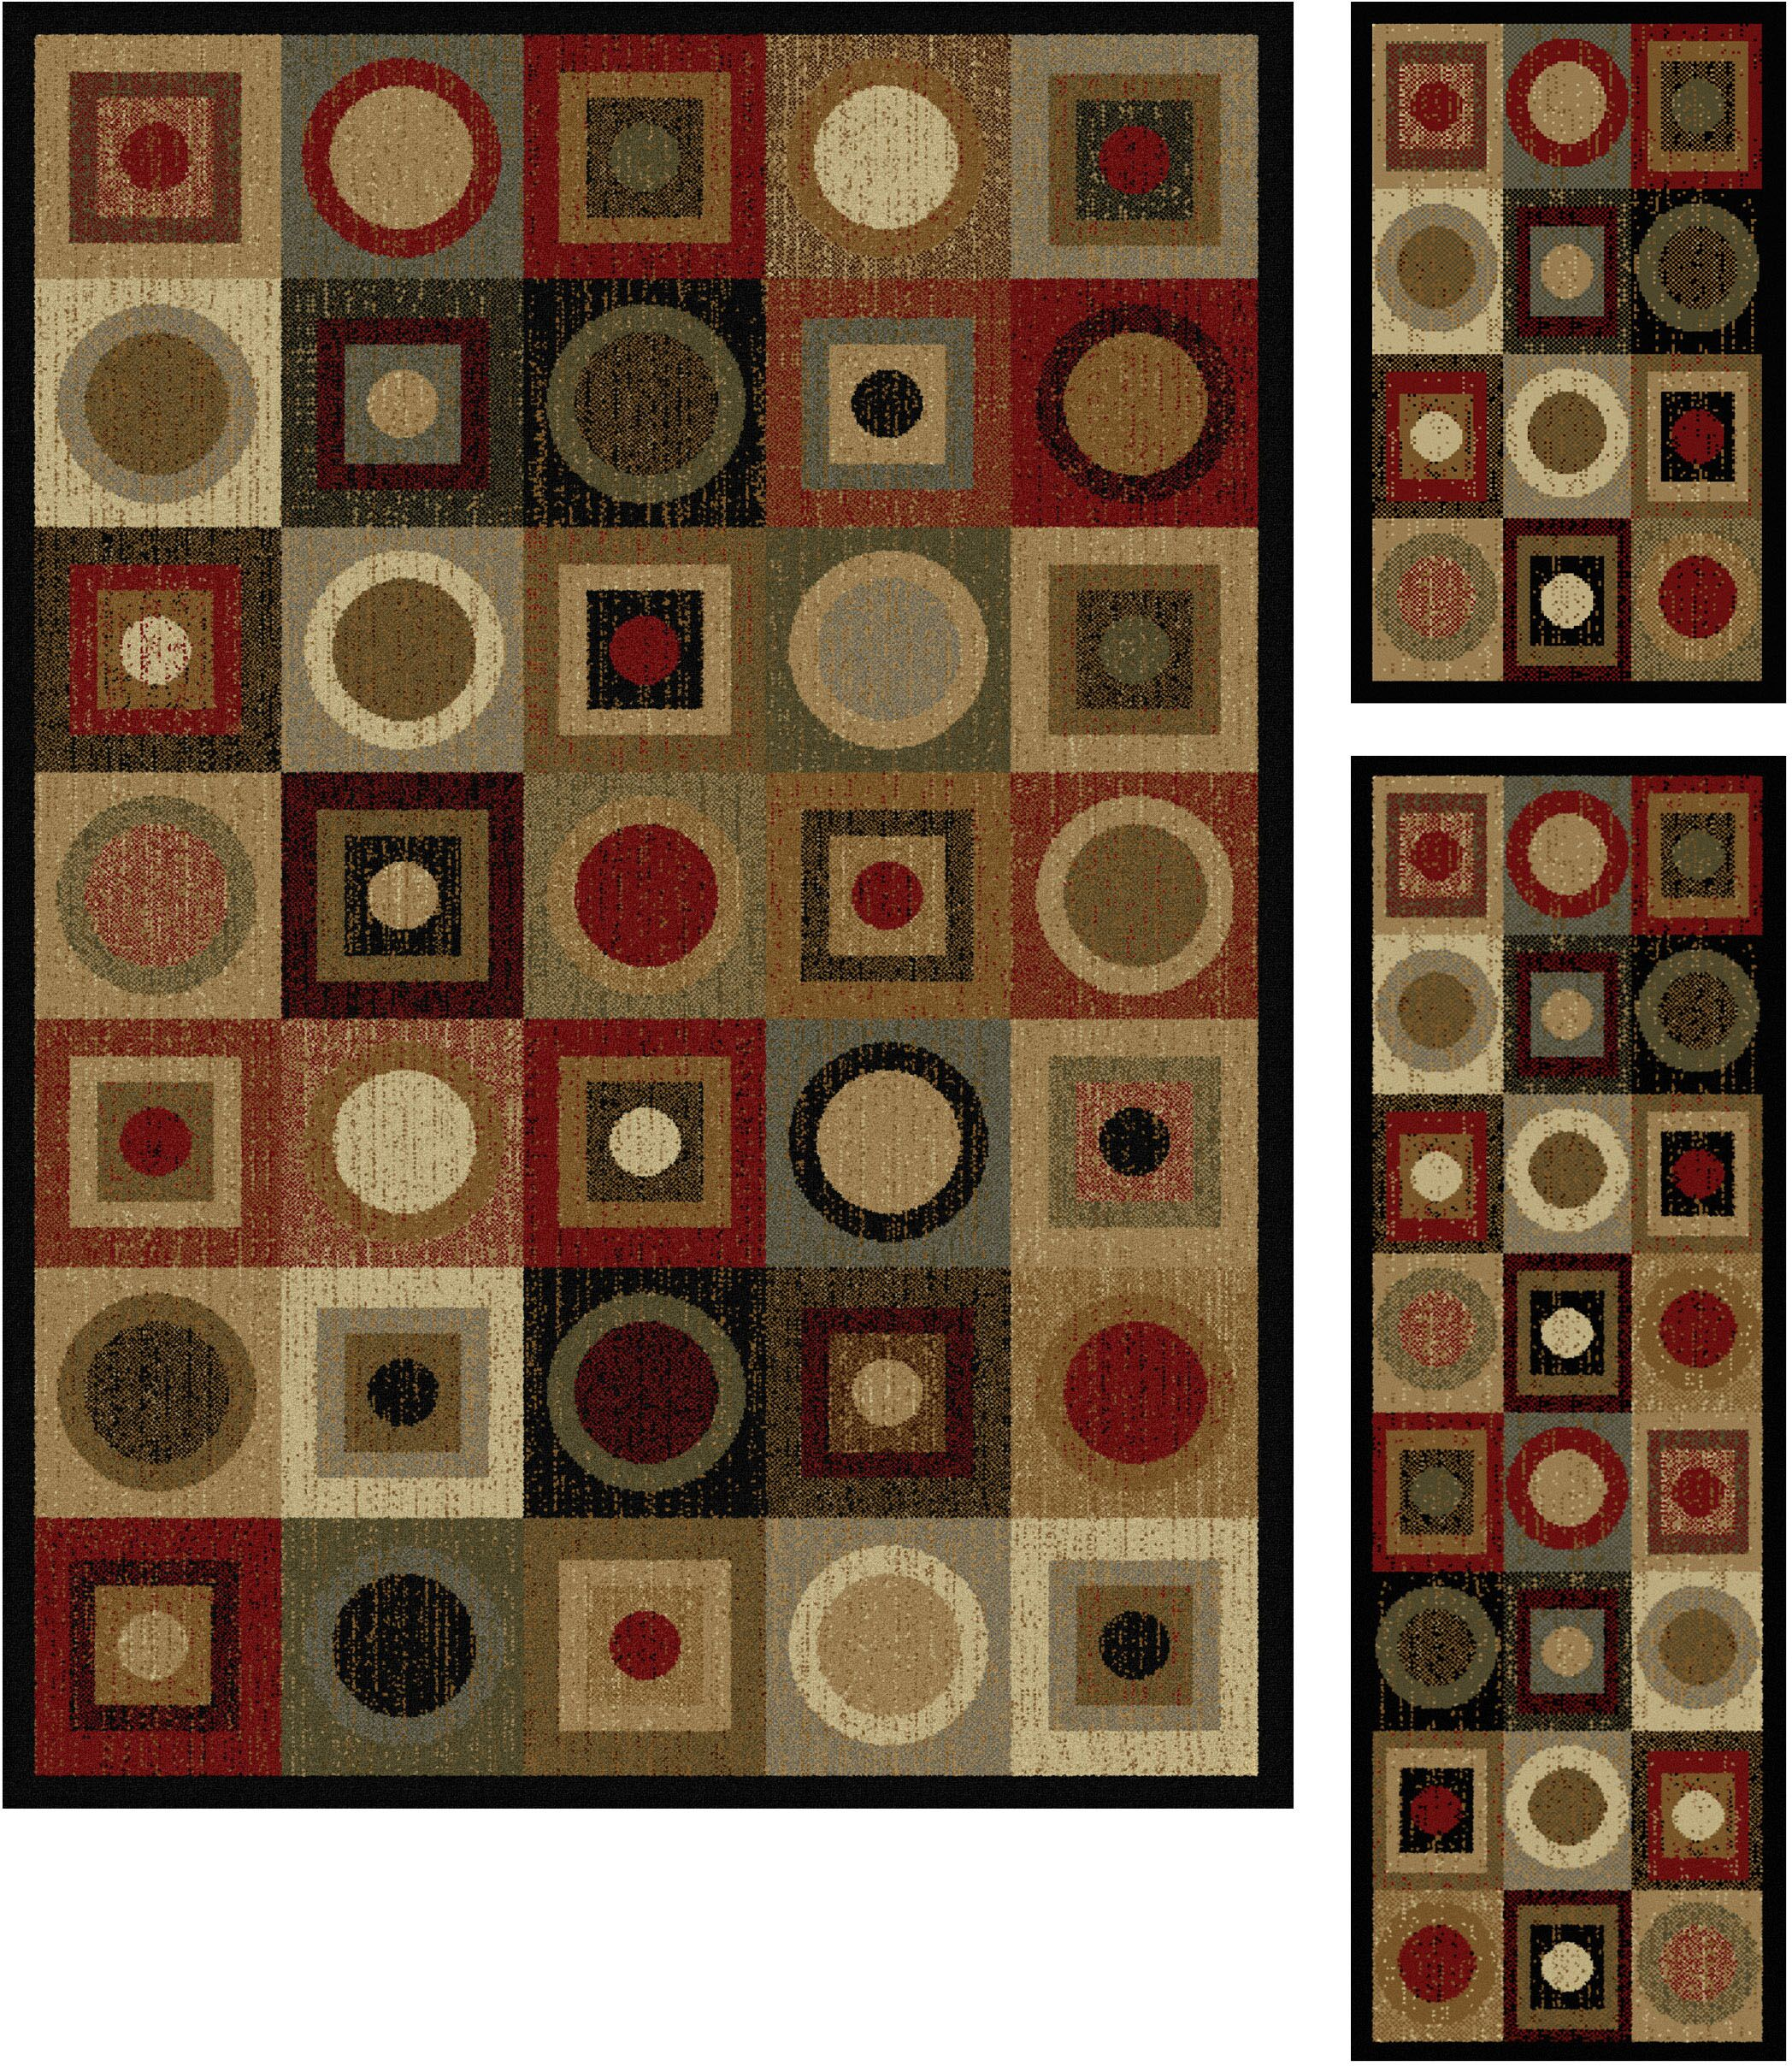 Colette Geometric Red/Brown Area Rug Rug Size: 5' x 7', 20'' x 60'', 20'' x 32''